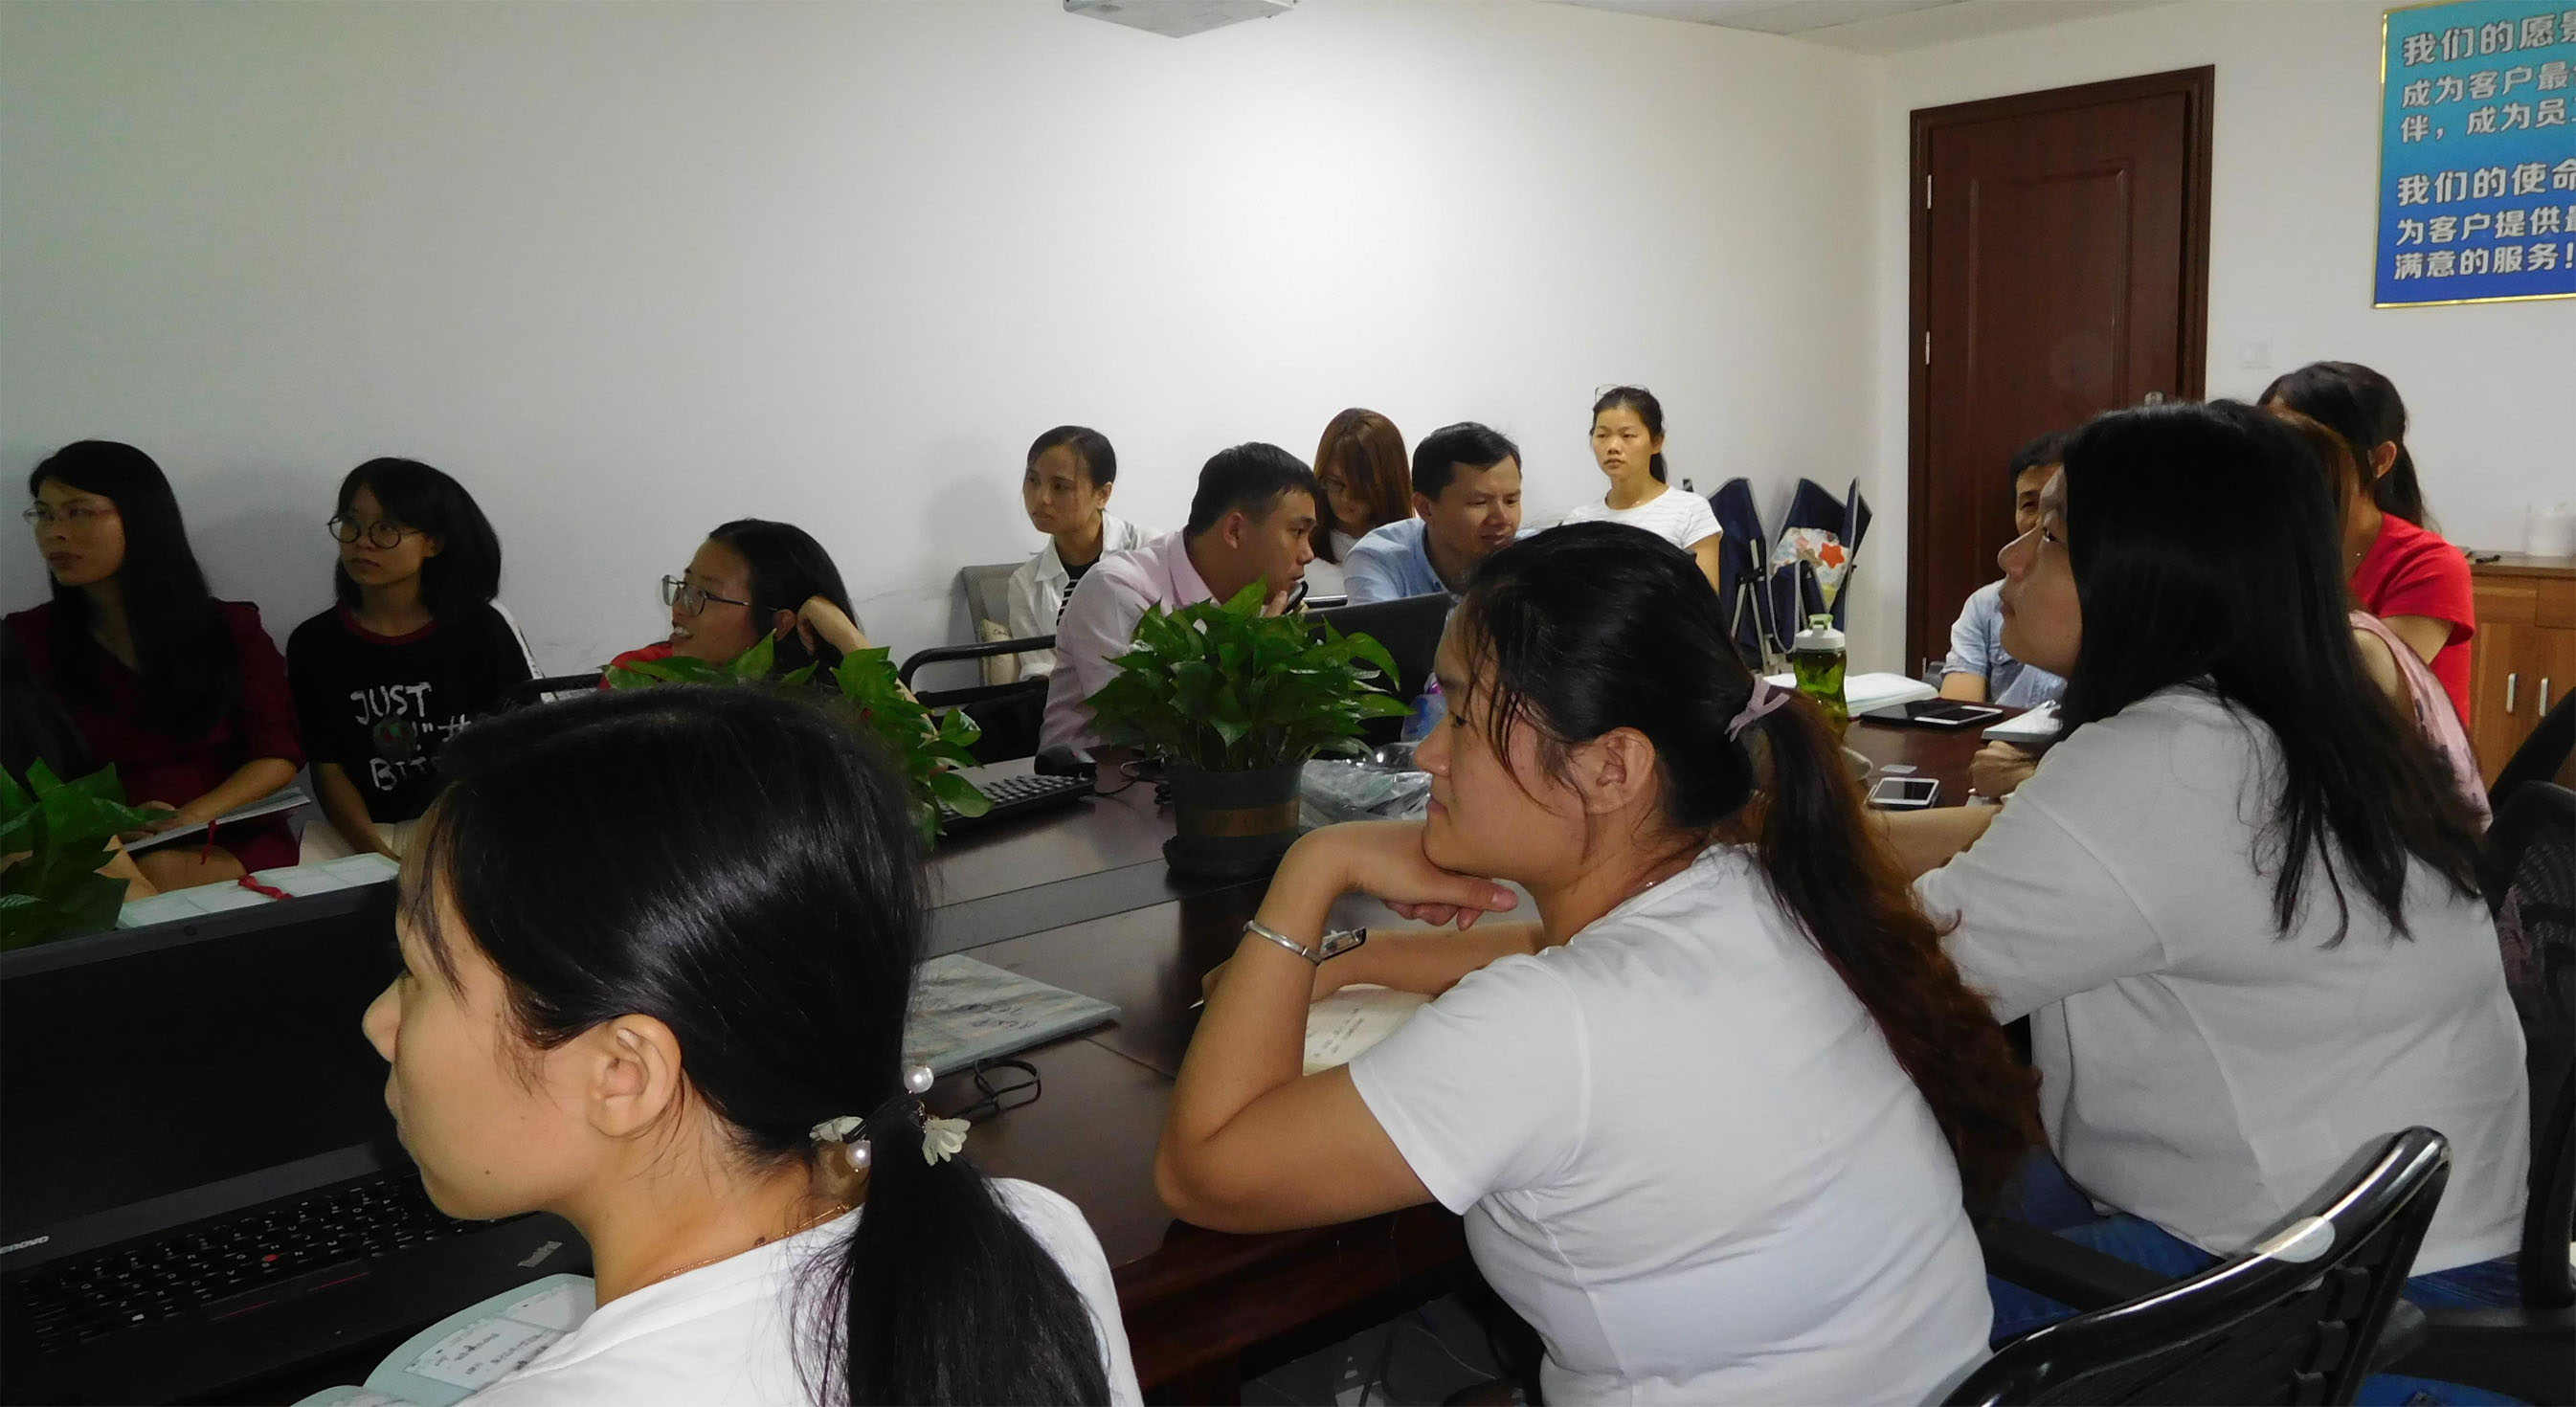 All the members are listening to the course